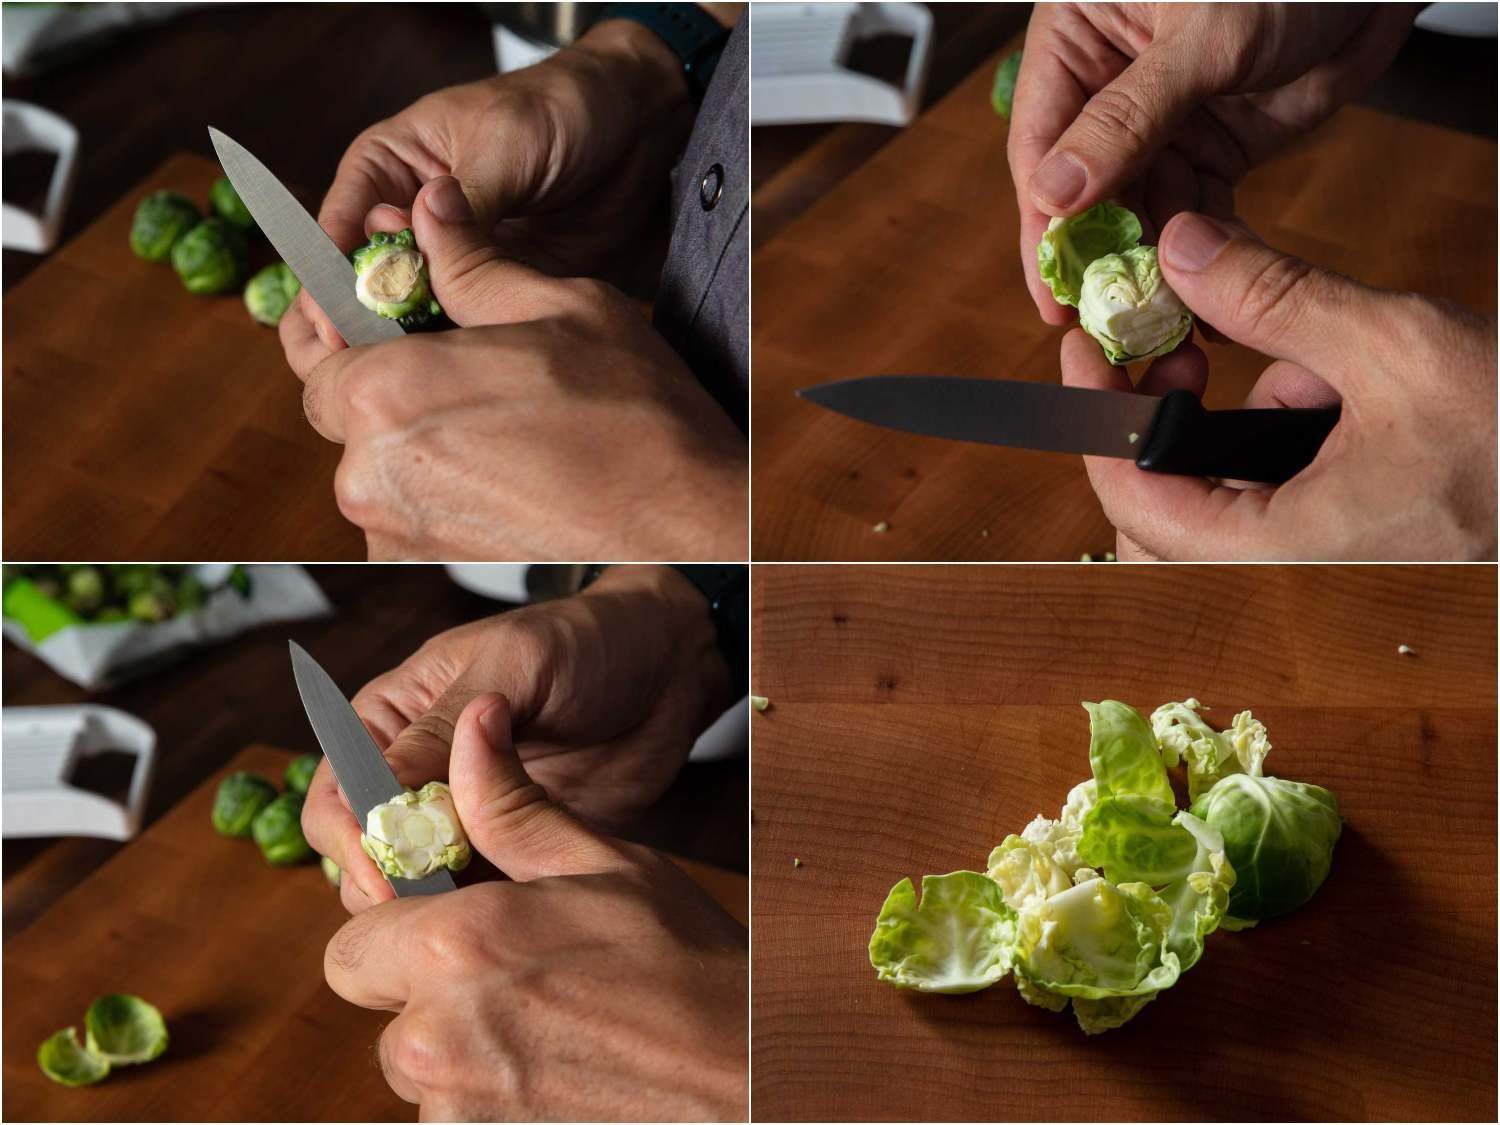 A four-photo collage showing the process for separating a Brussels sprout into its individual leaves: cut the core to detach the leaves, remove the leaves, repeat until most of the leaves have been removed.